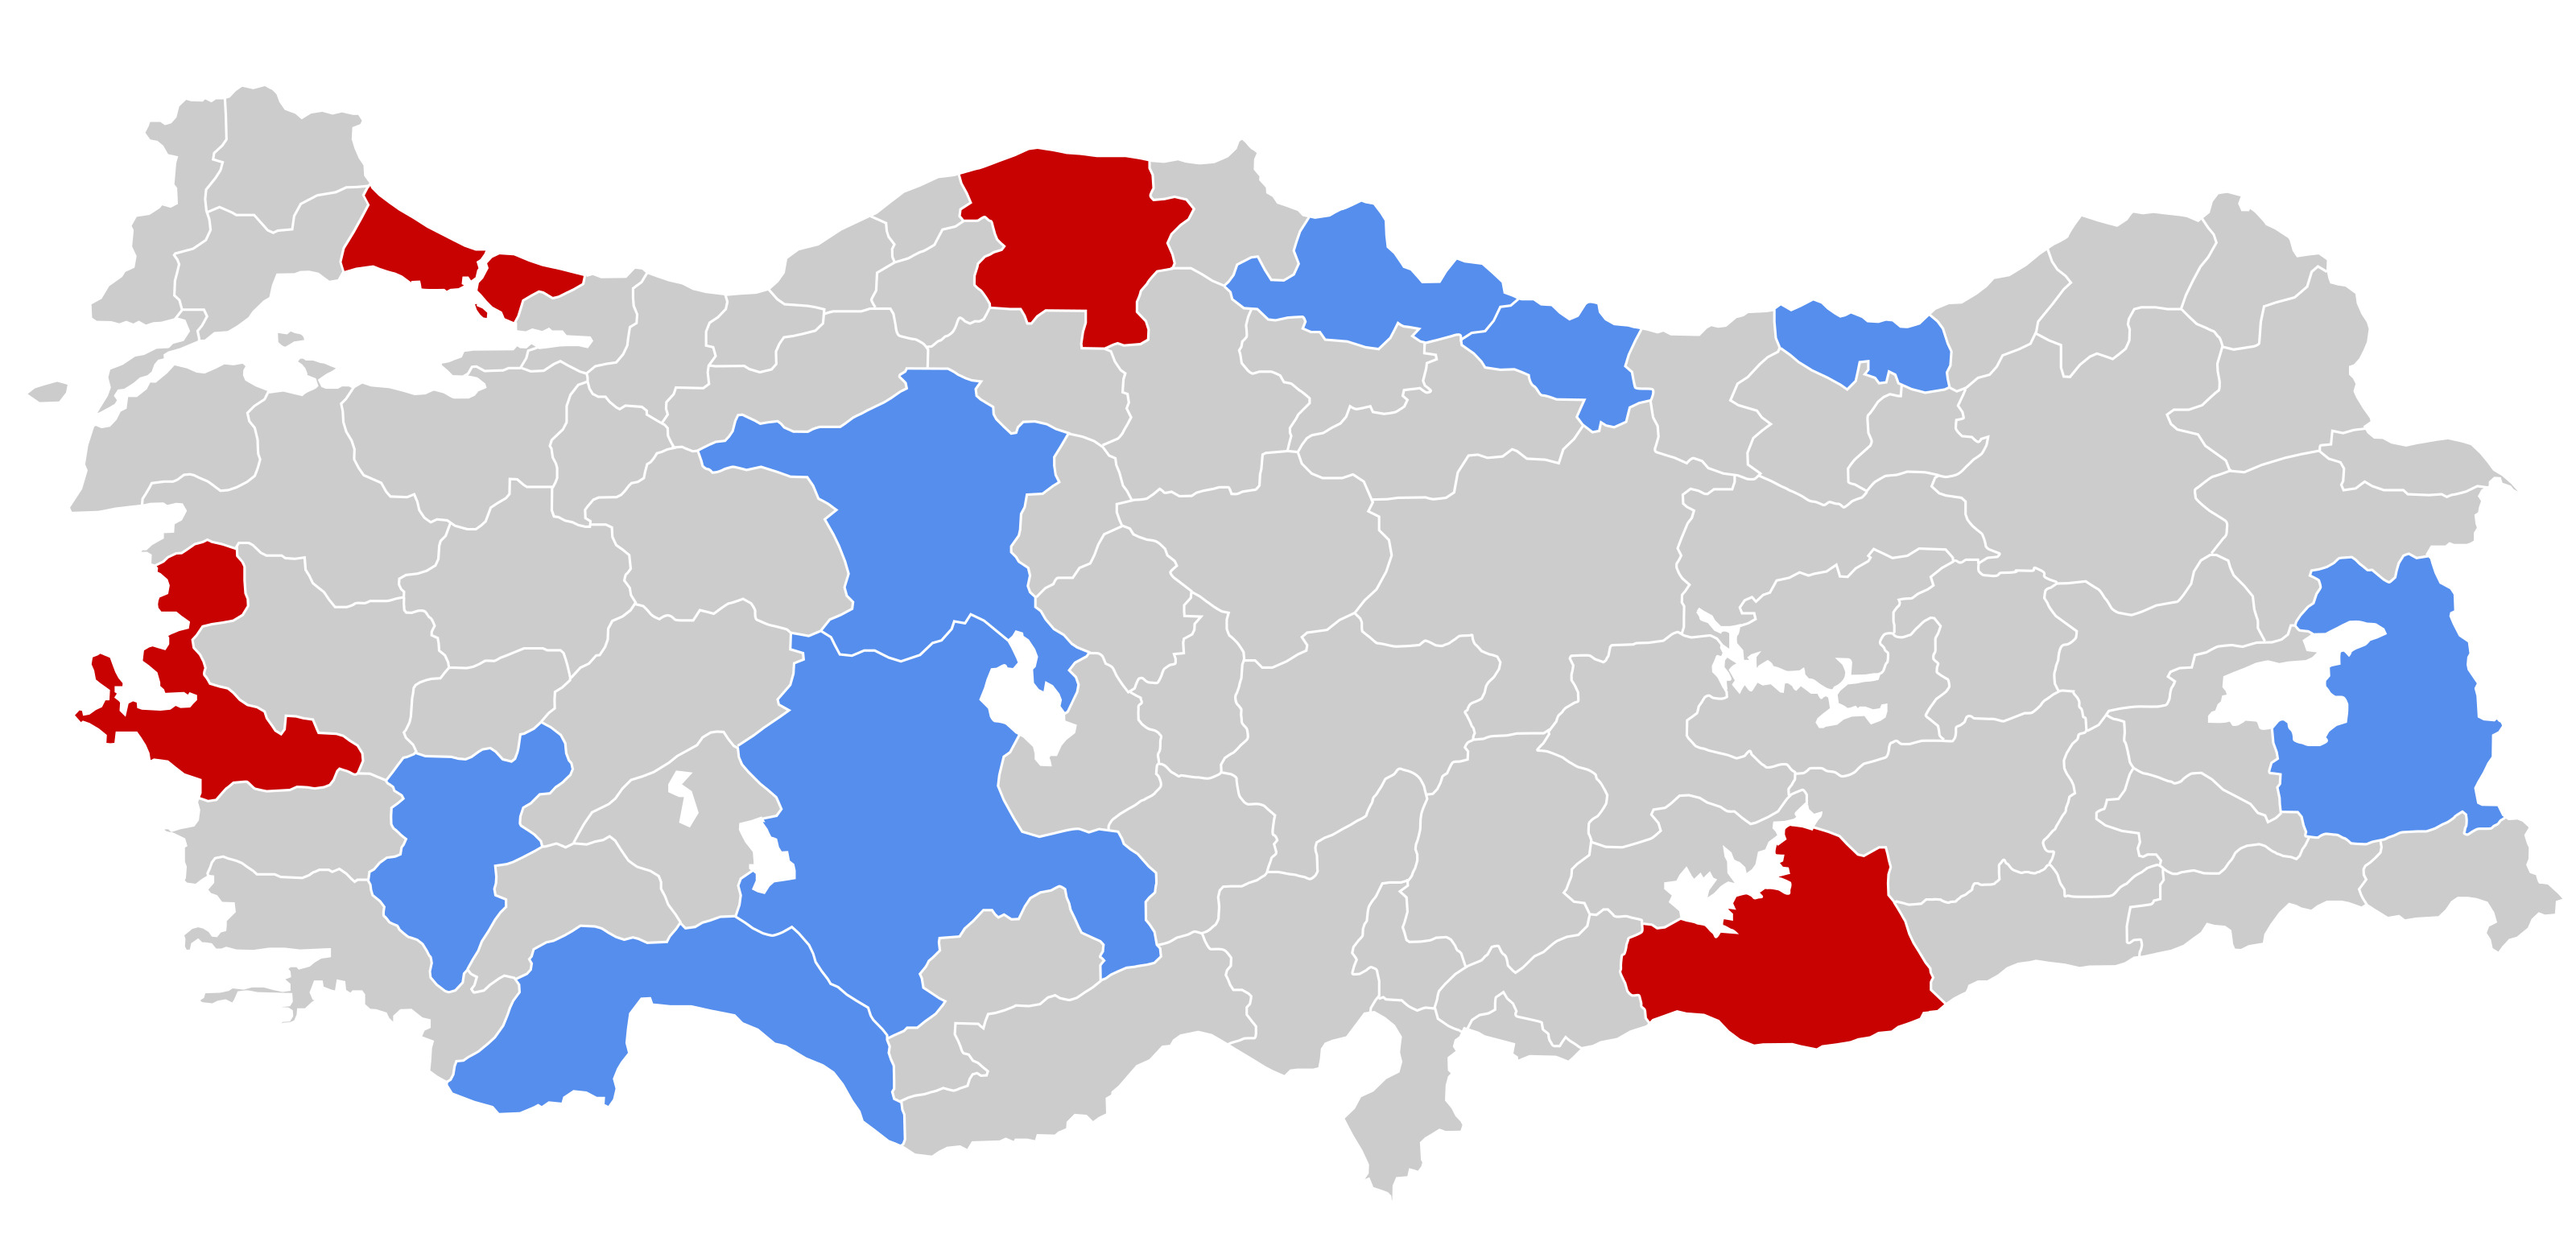 covıd-19_outbreak_cases_in_turkey